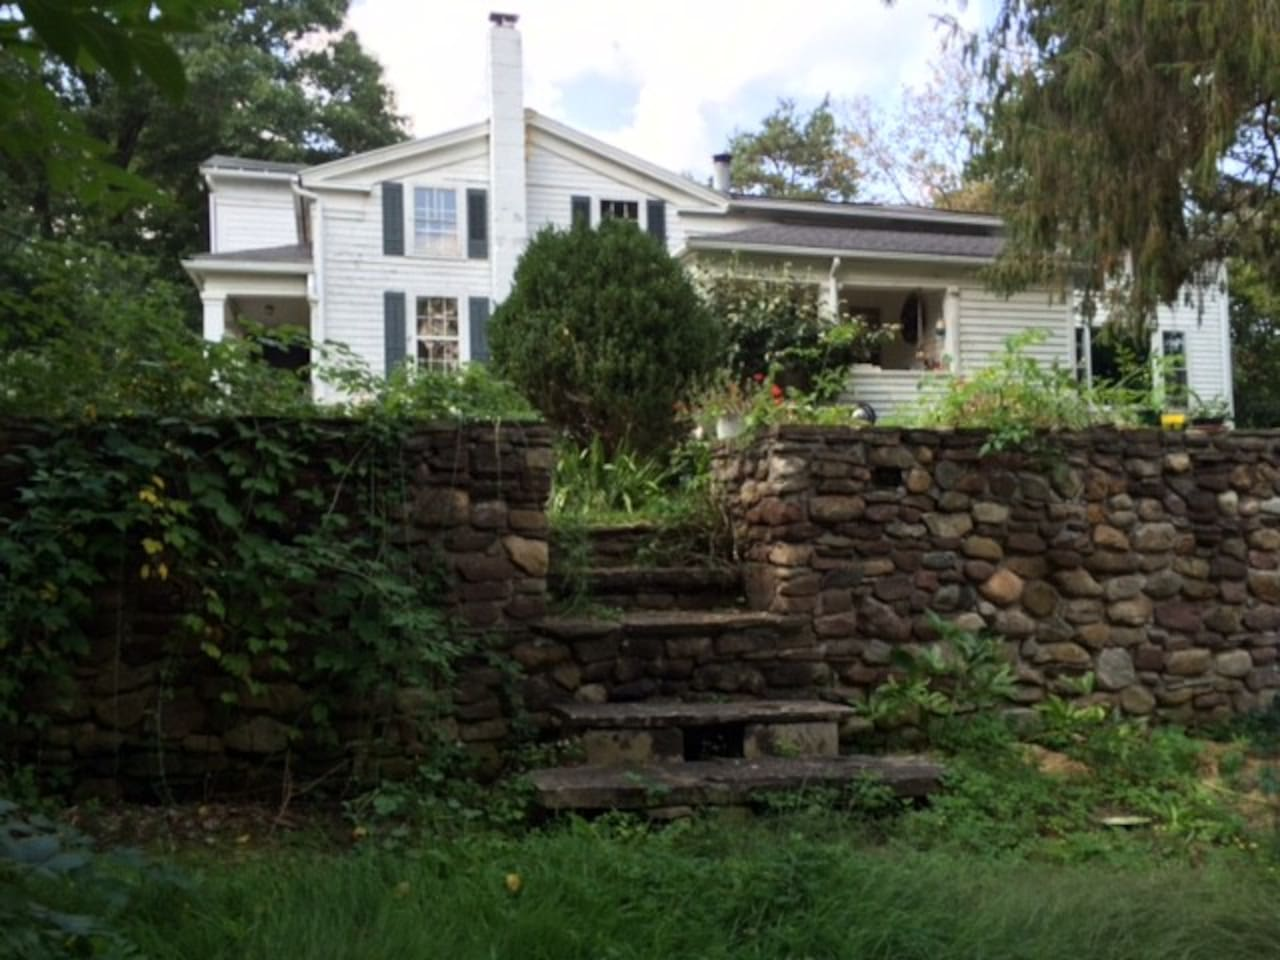 This is the east side of my home as seen from the lower terrace and garden area.